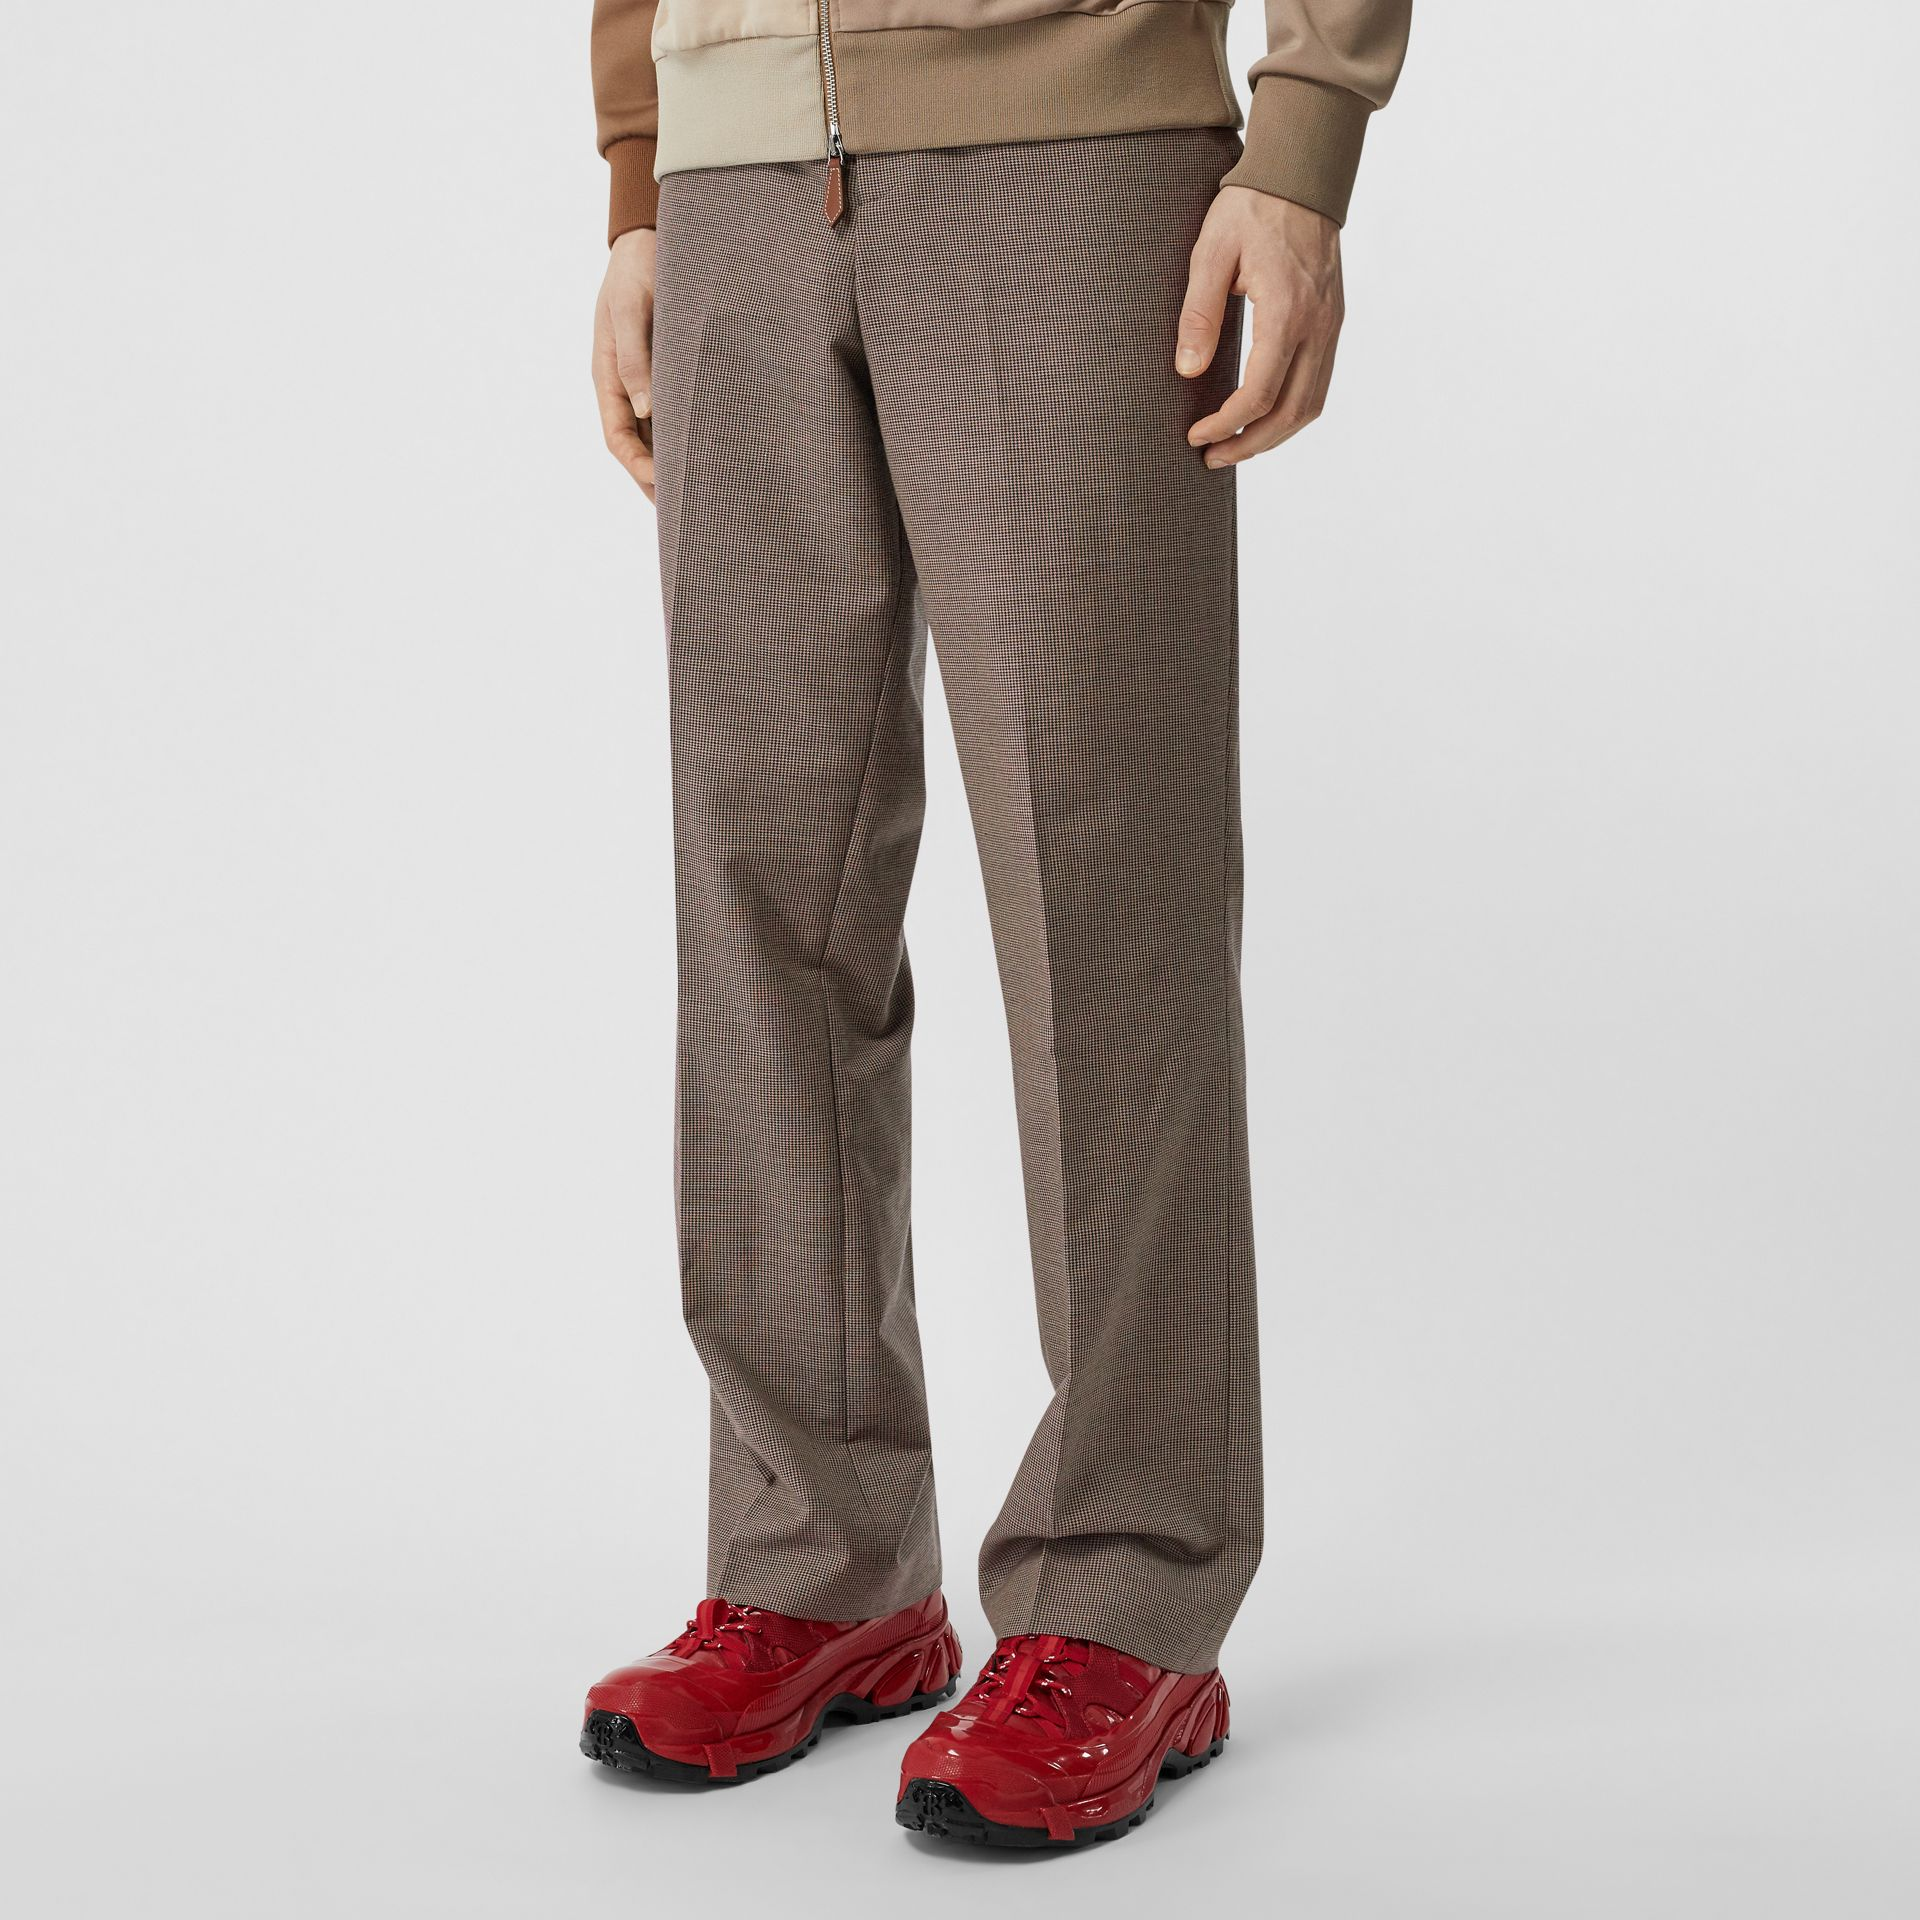 Pocket Detail Wool Tailored Trousers in Beige - Men | Burberry Hong Kong S.A.R - gallery image 5